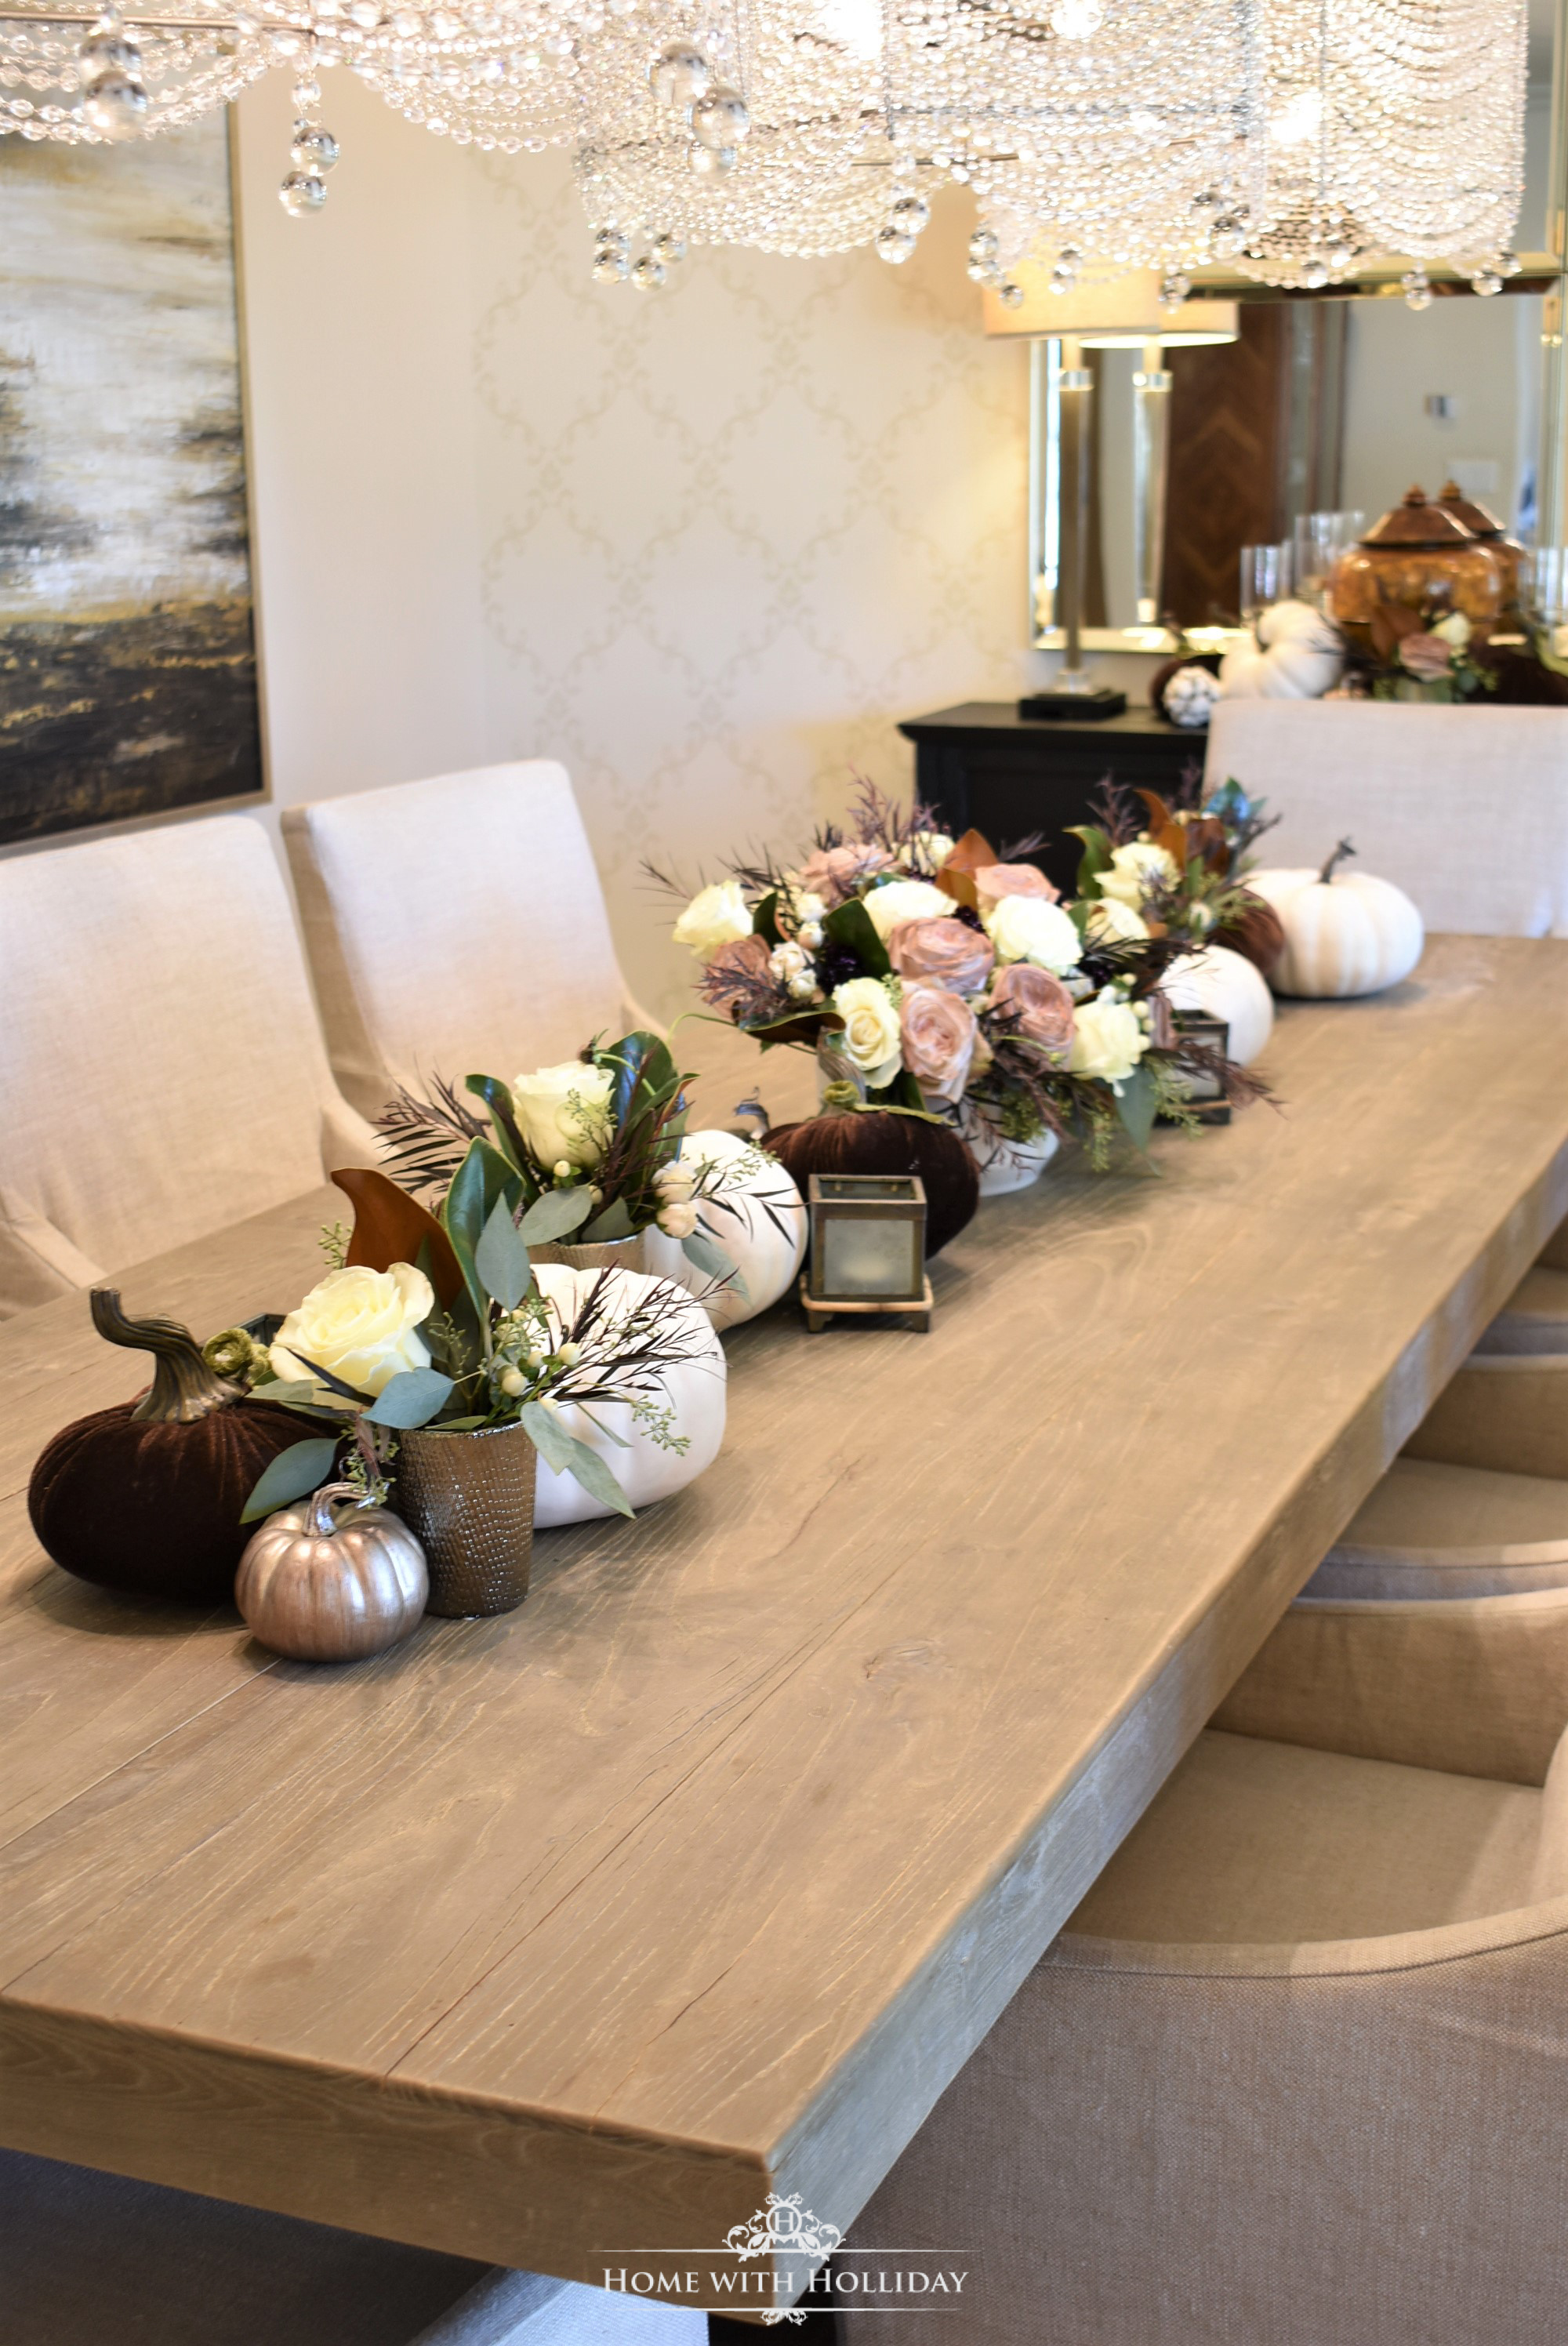 Centerpiece for Fall Table Setting with Brown and White Pumpkins